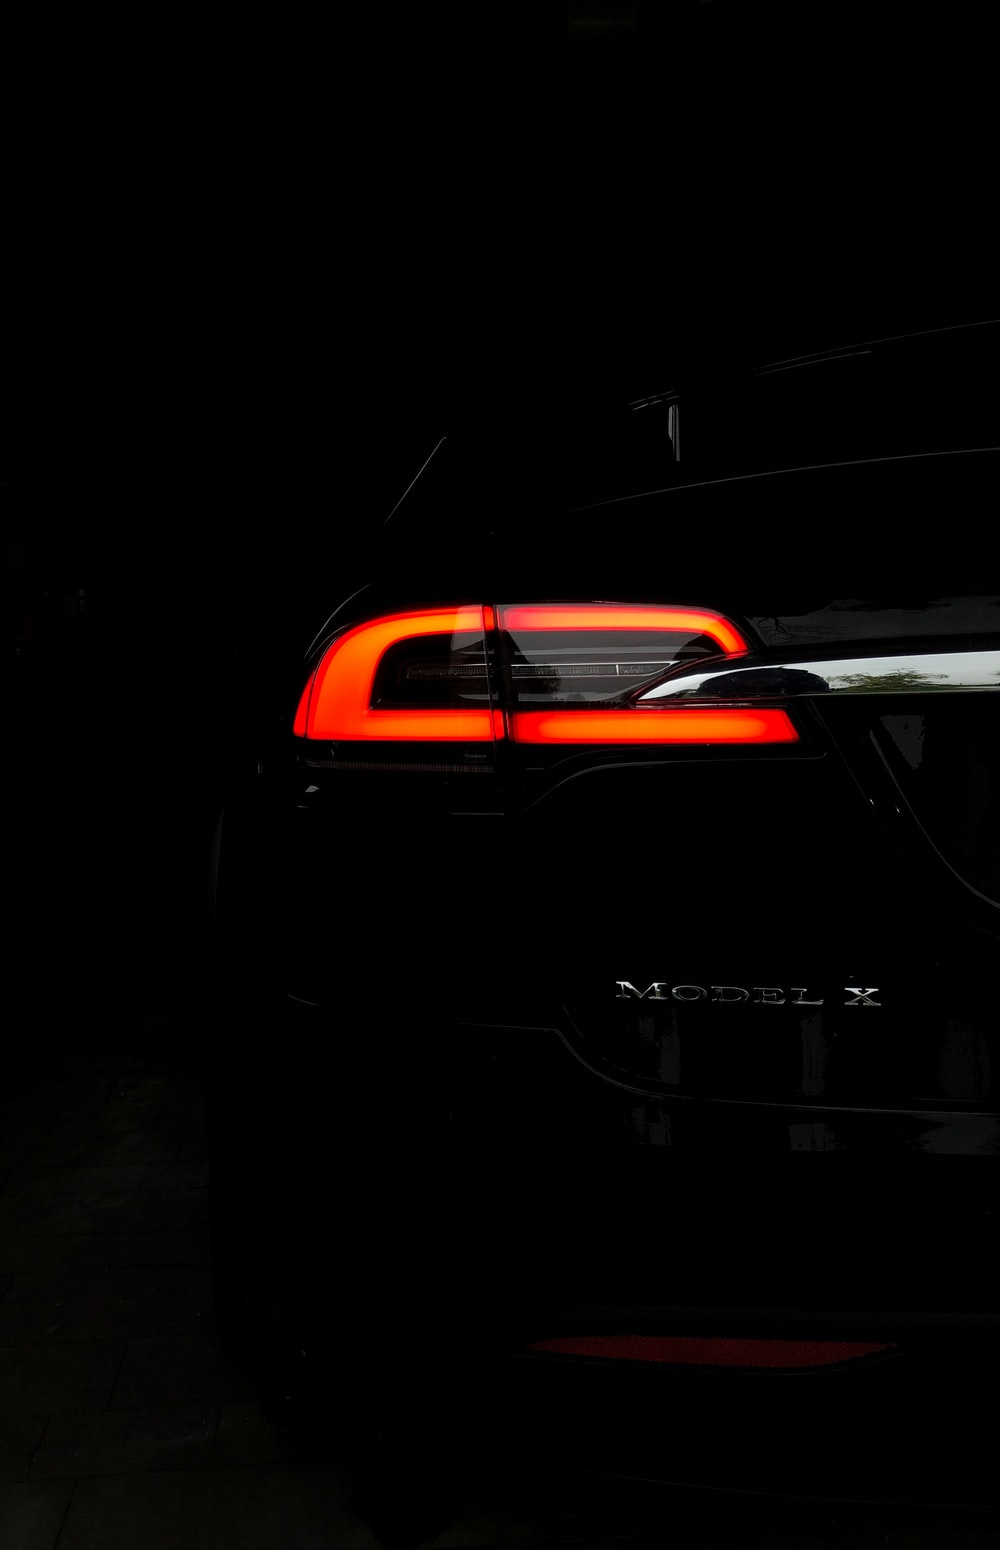 taillight of Model X vehicle